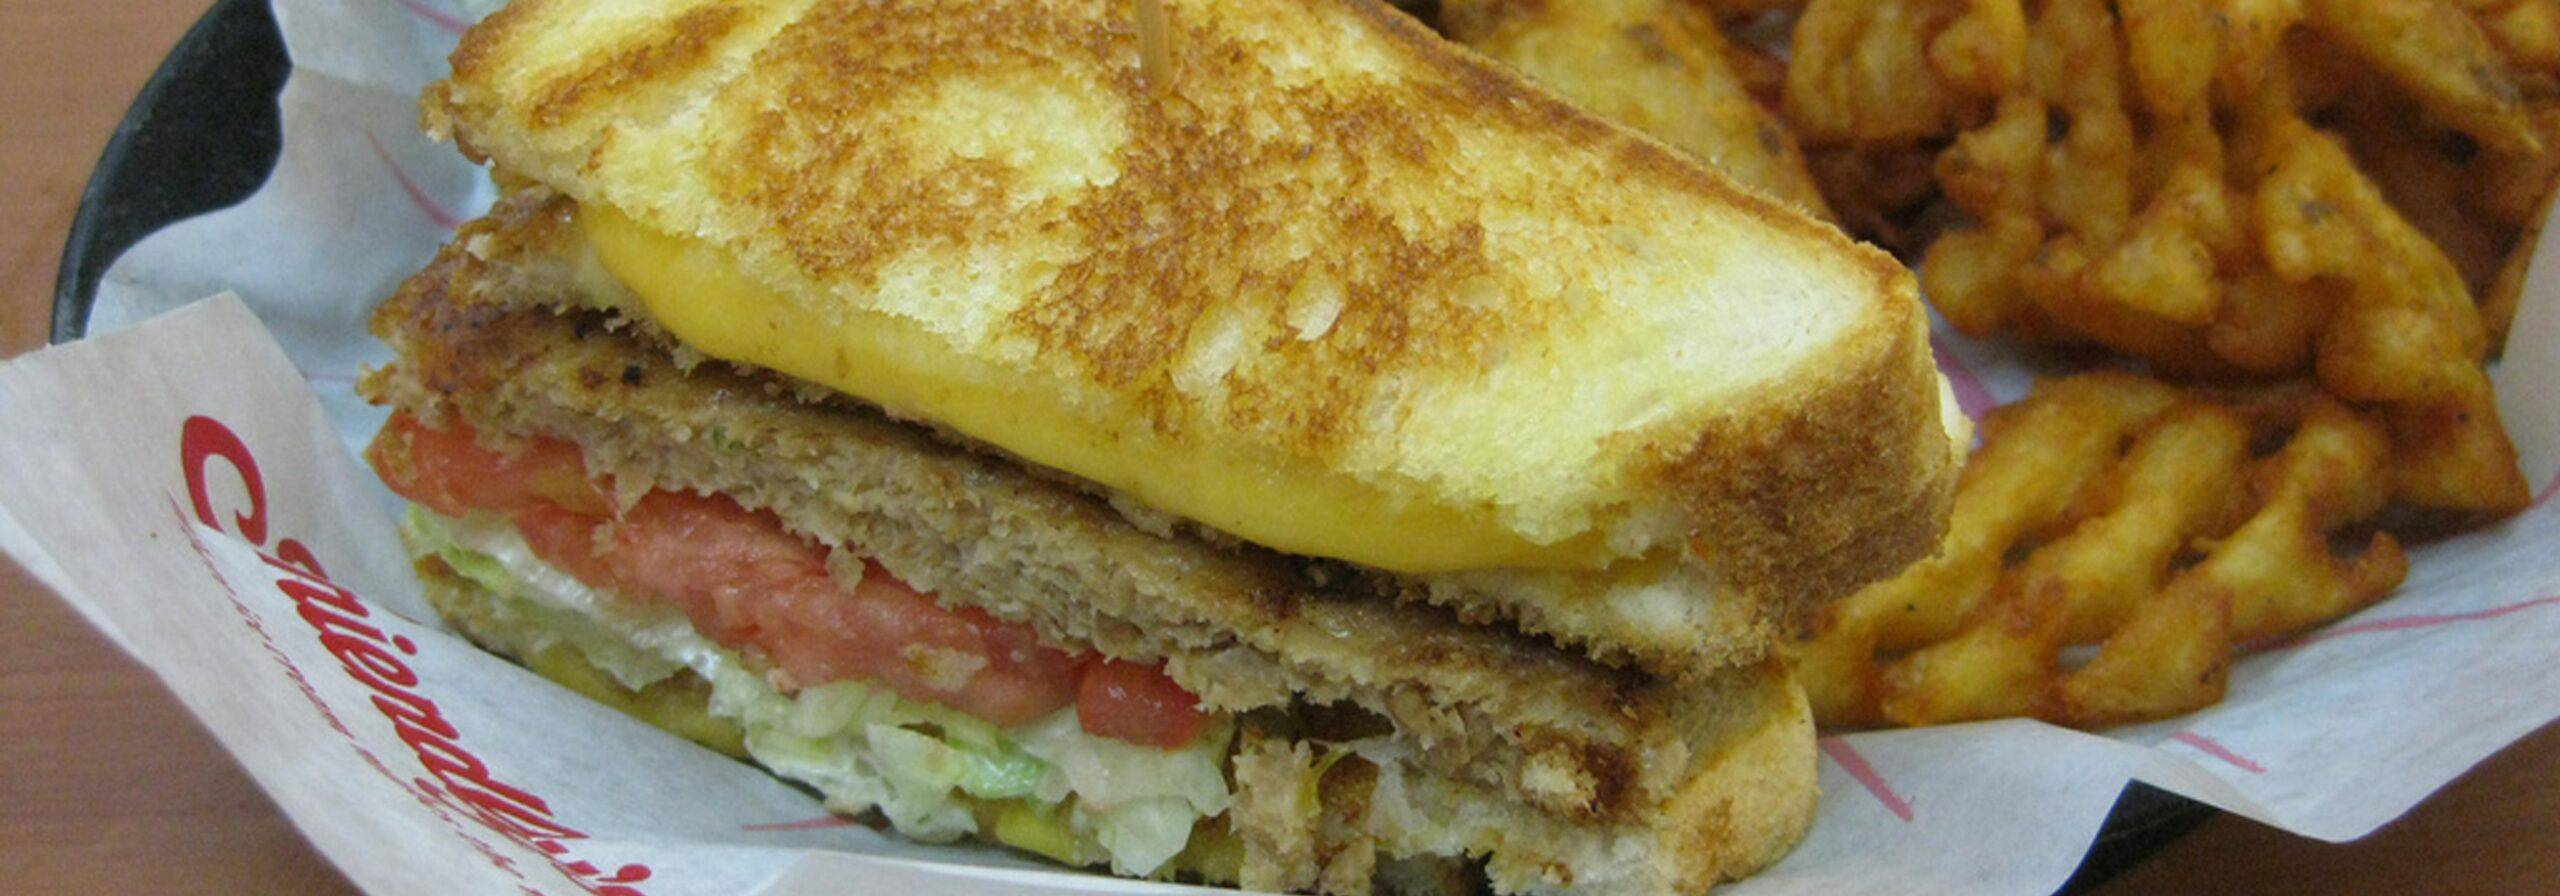 Friendly's Grilled Cheese Burger